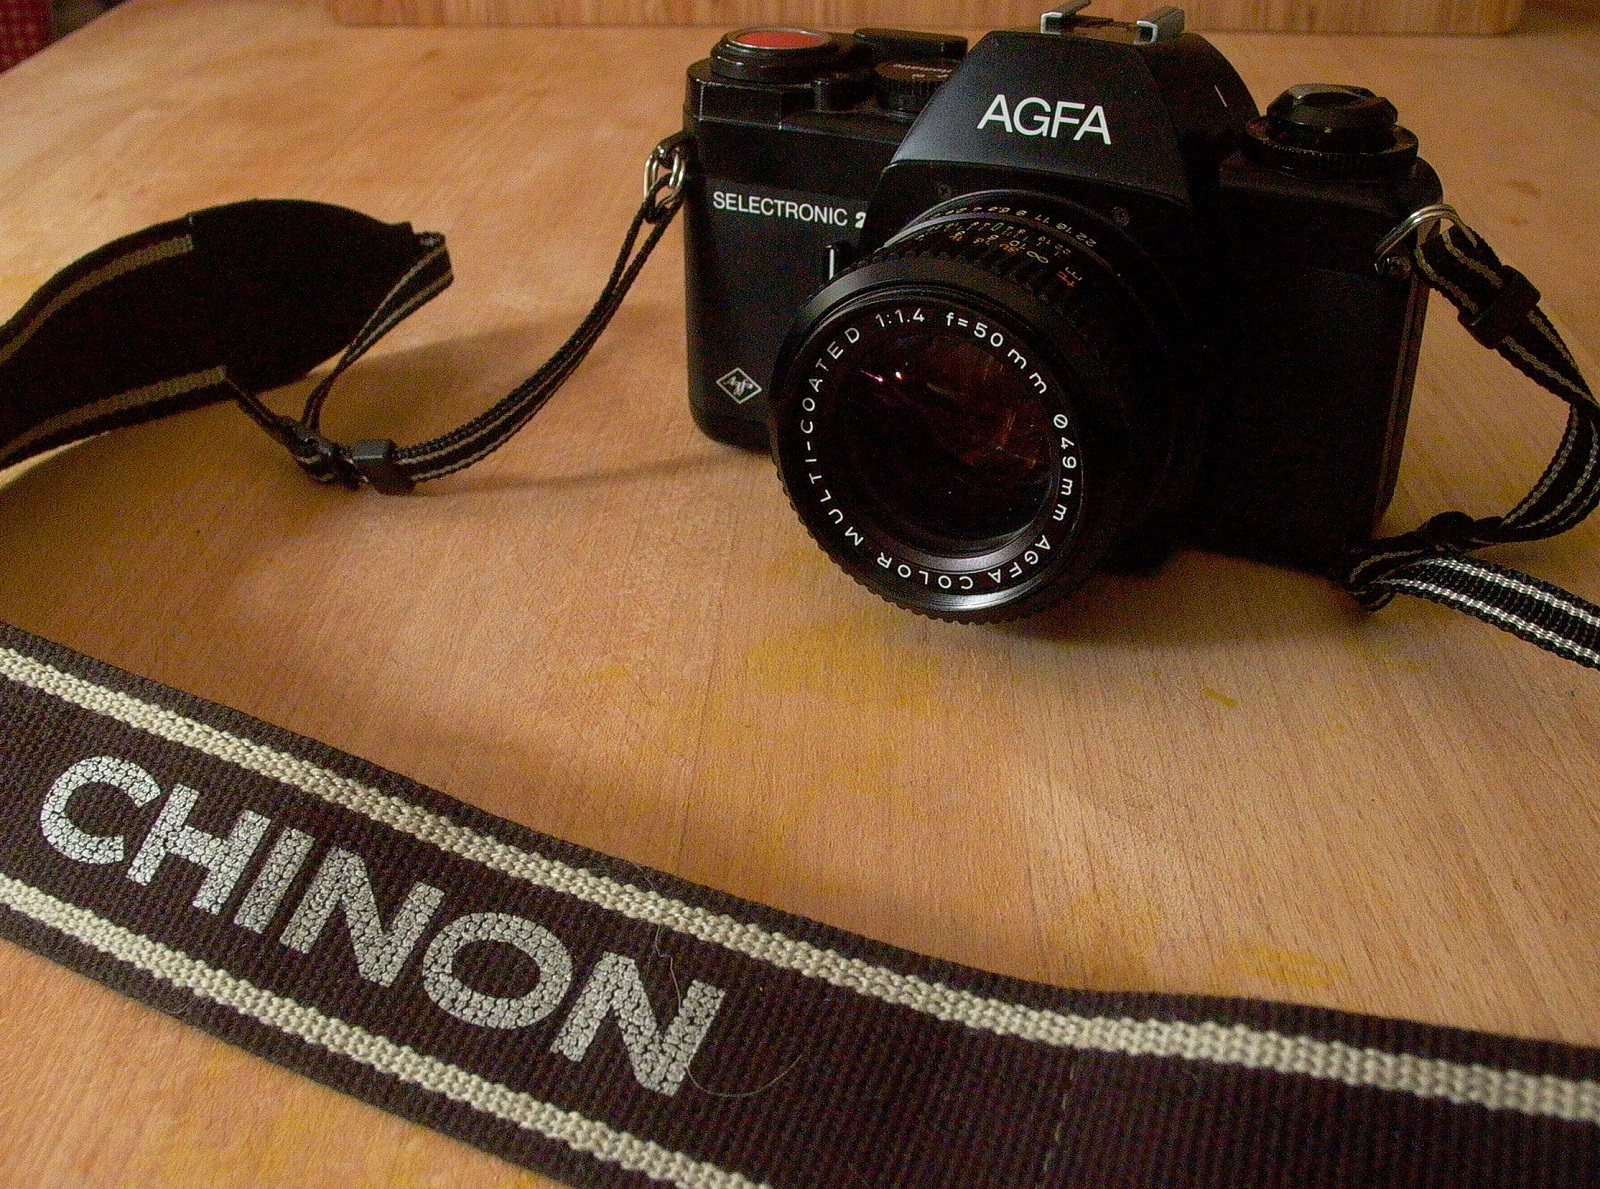 a photo of the agfa selectronic 2 camera